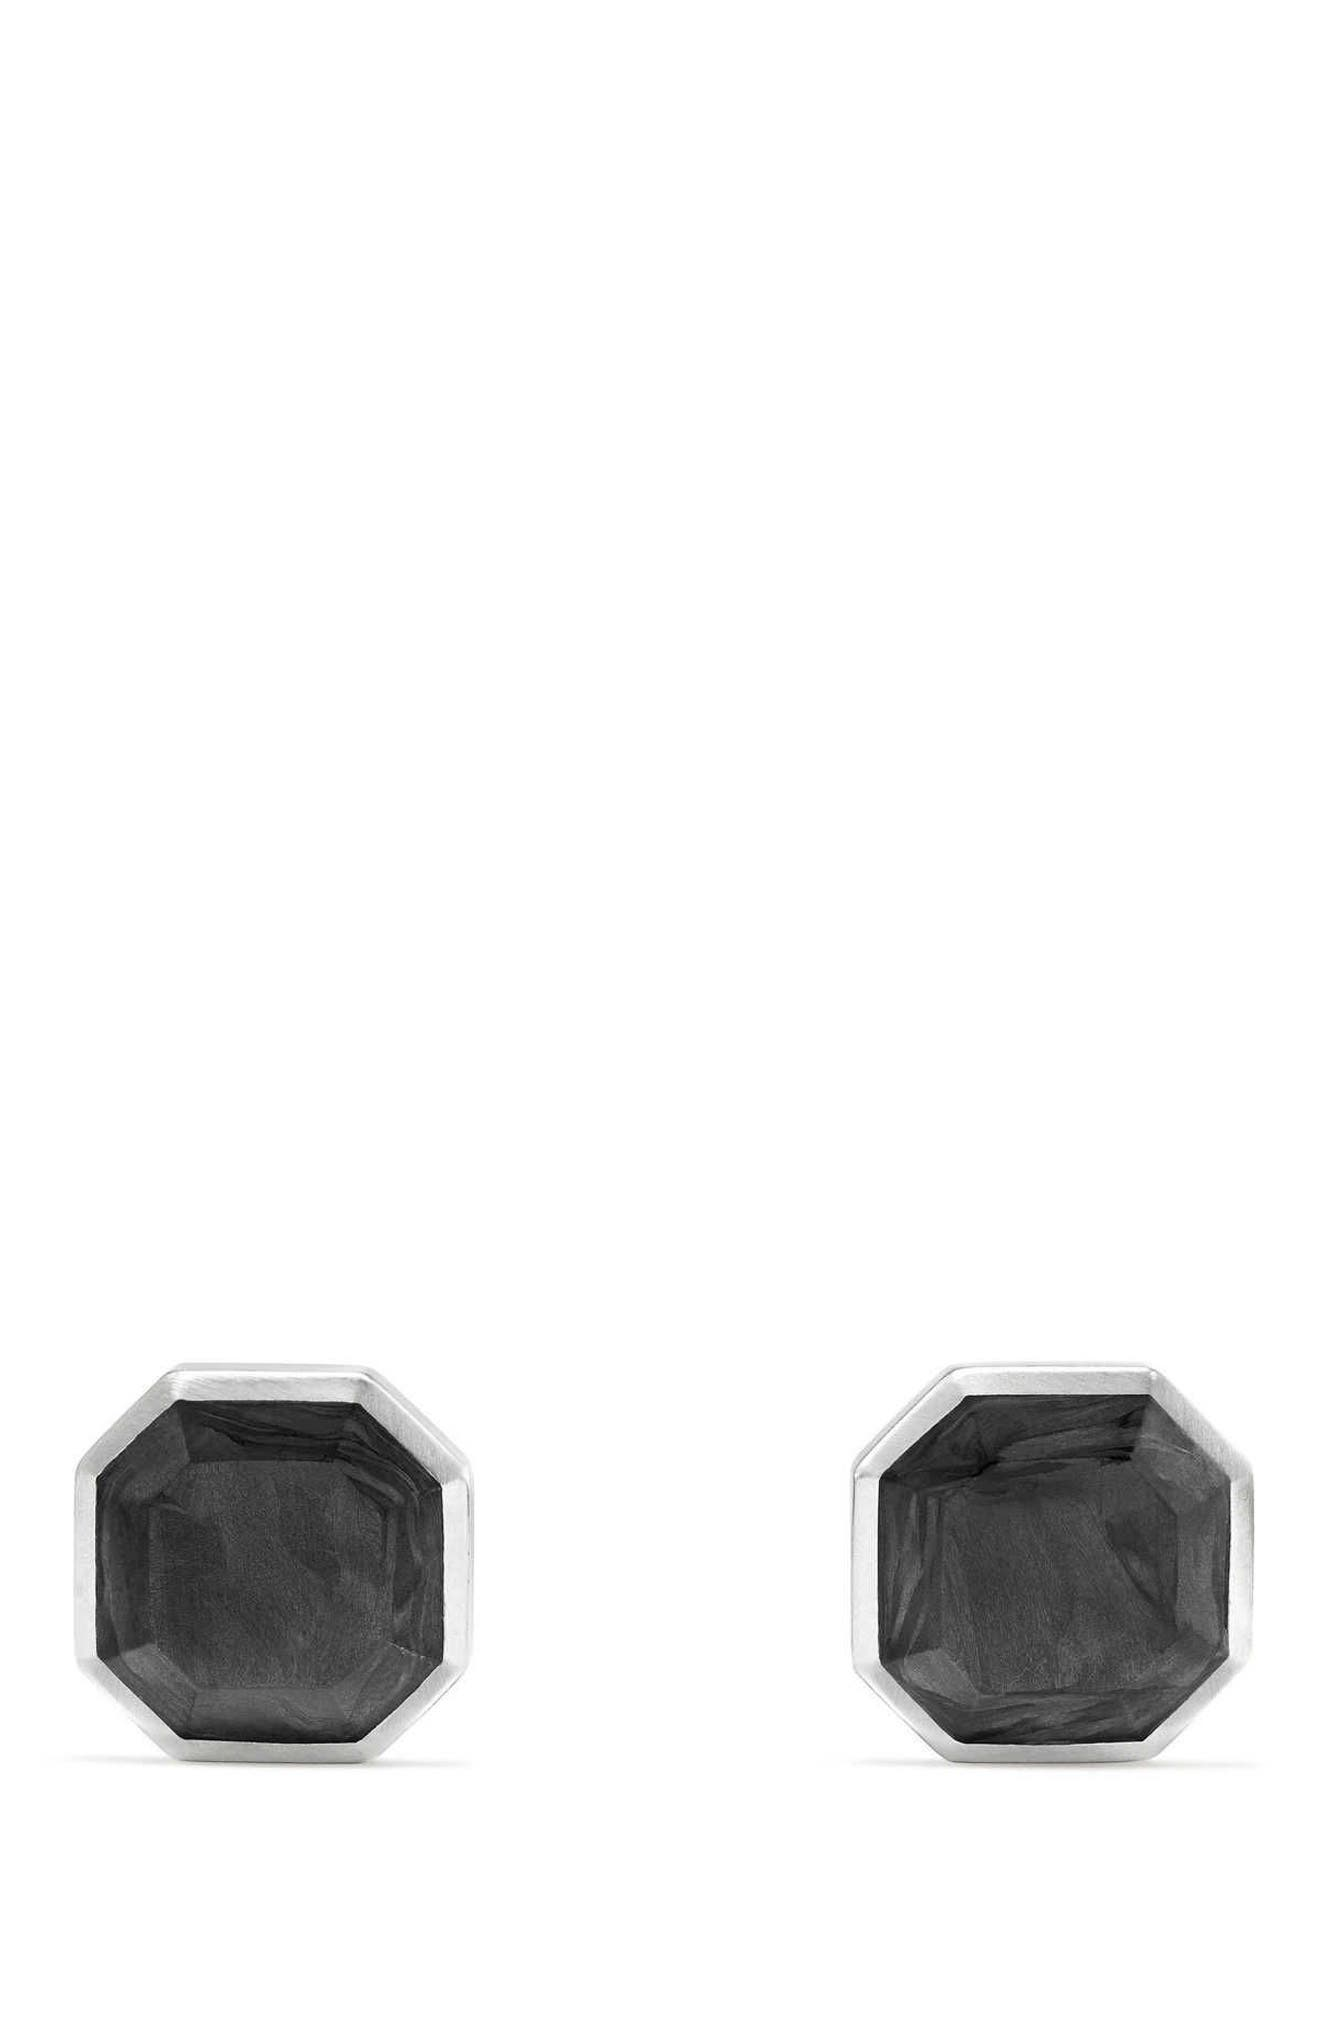 Forged Carbon Cuff Links,                             Main thumbnail 1, color,                             029